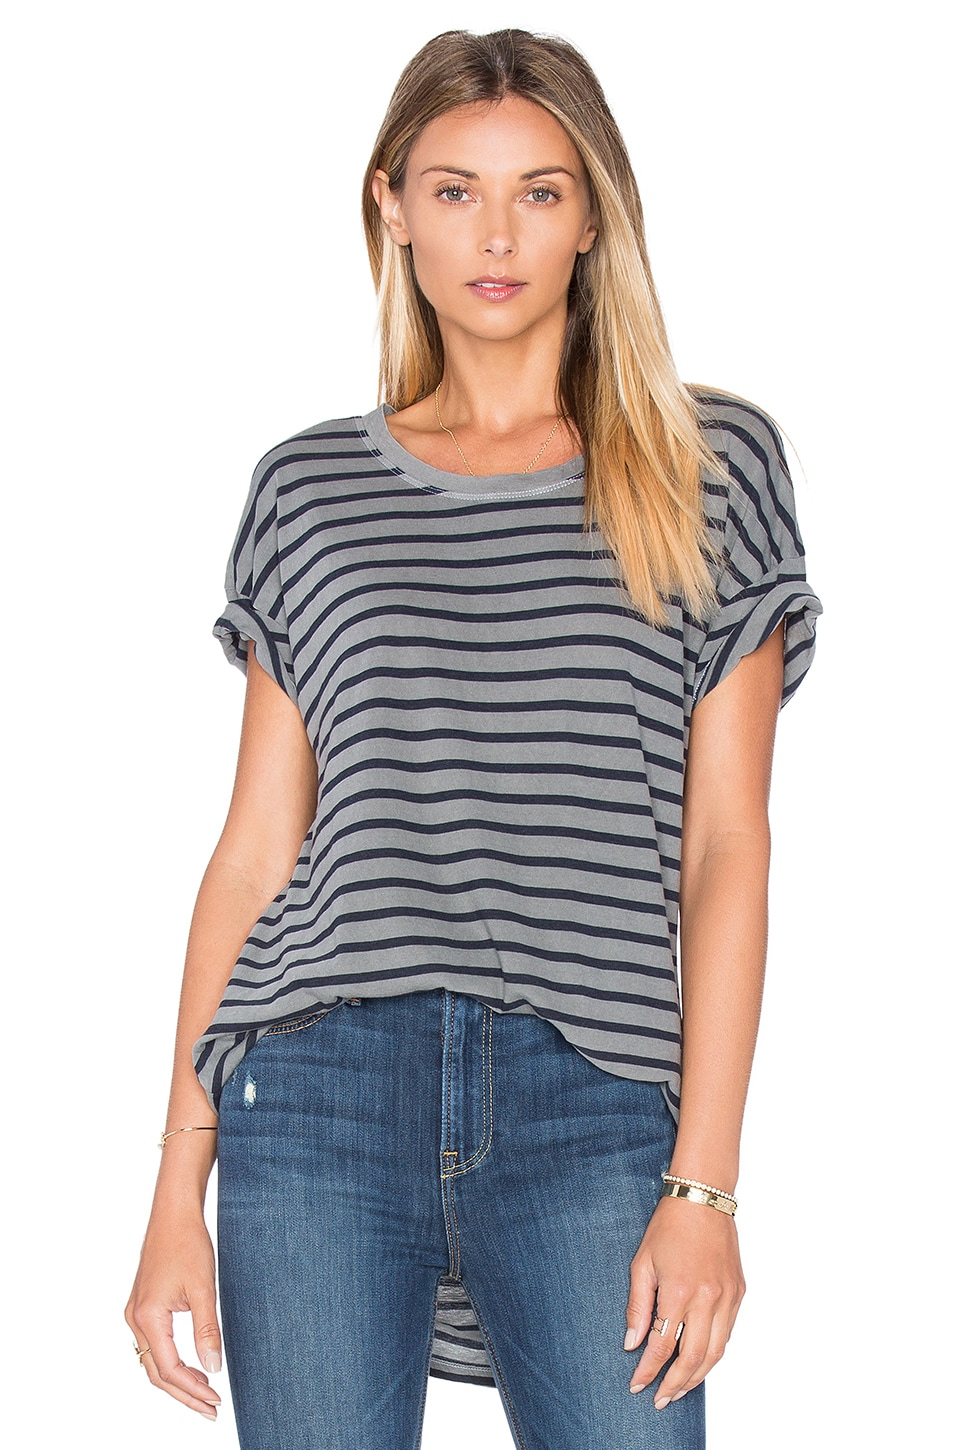 Sequoia Yarn Dye Stripe Tee by Splendid